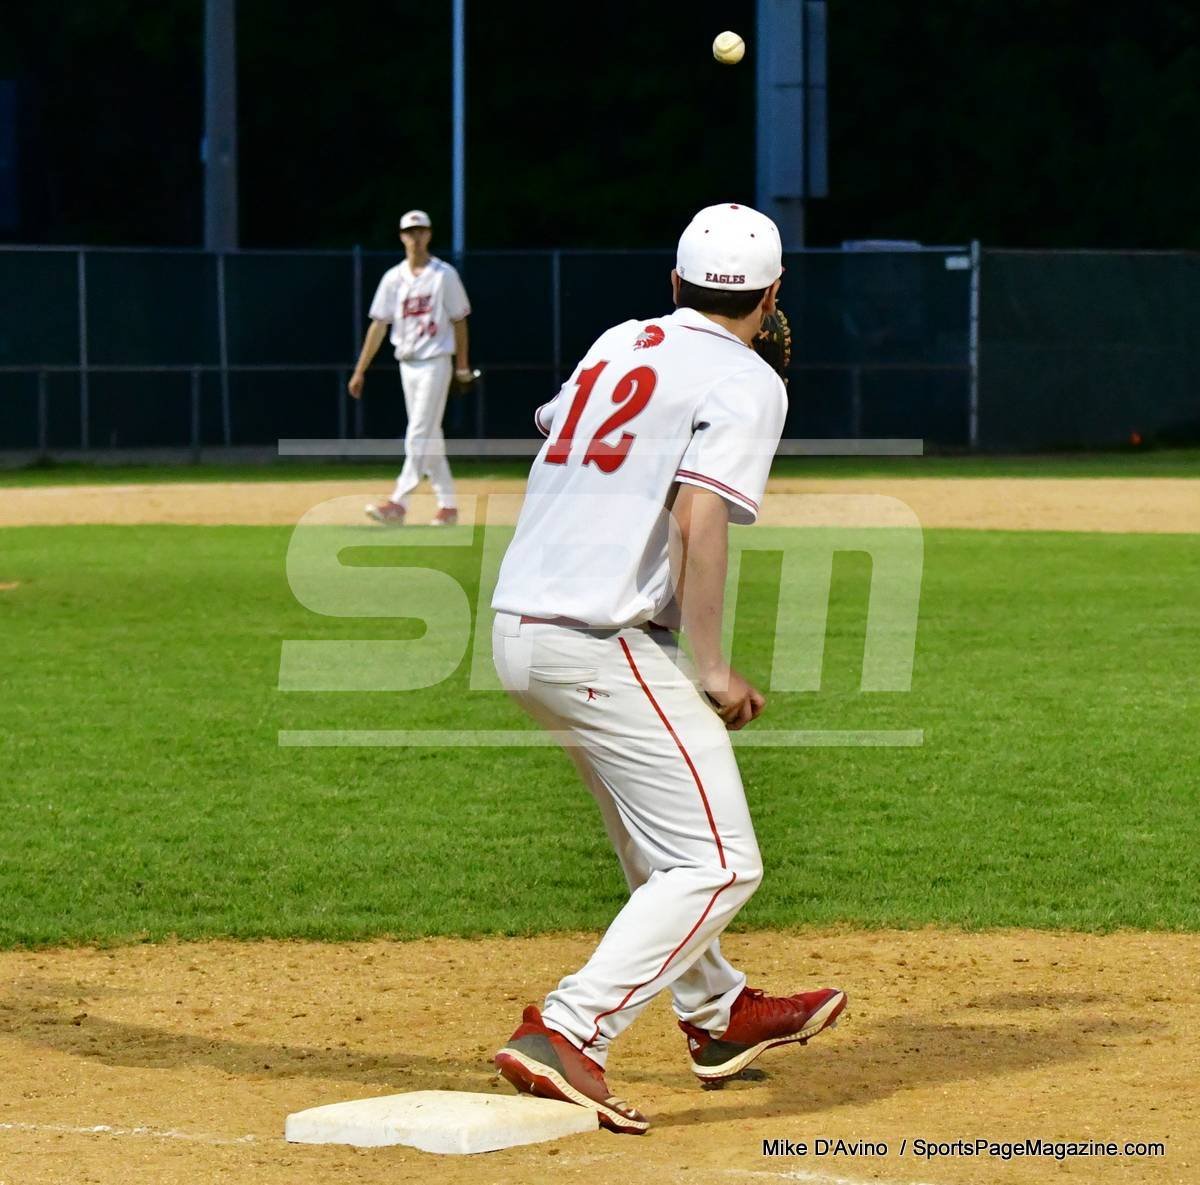 05-22 Gallery CIAC BASE; Wolcott vs. ST. Paul - NVL T. SF's - Photo # 1096